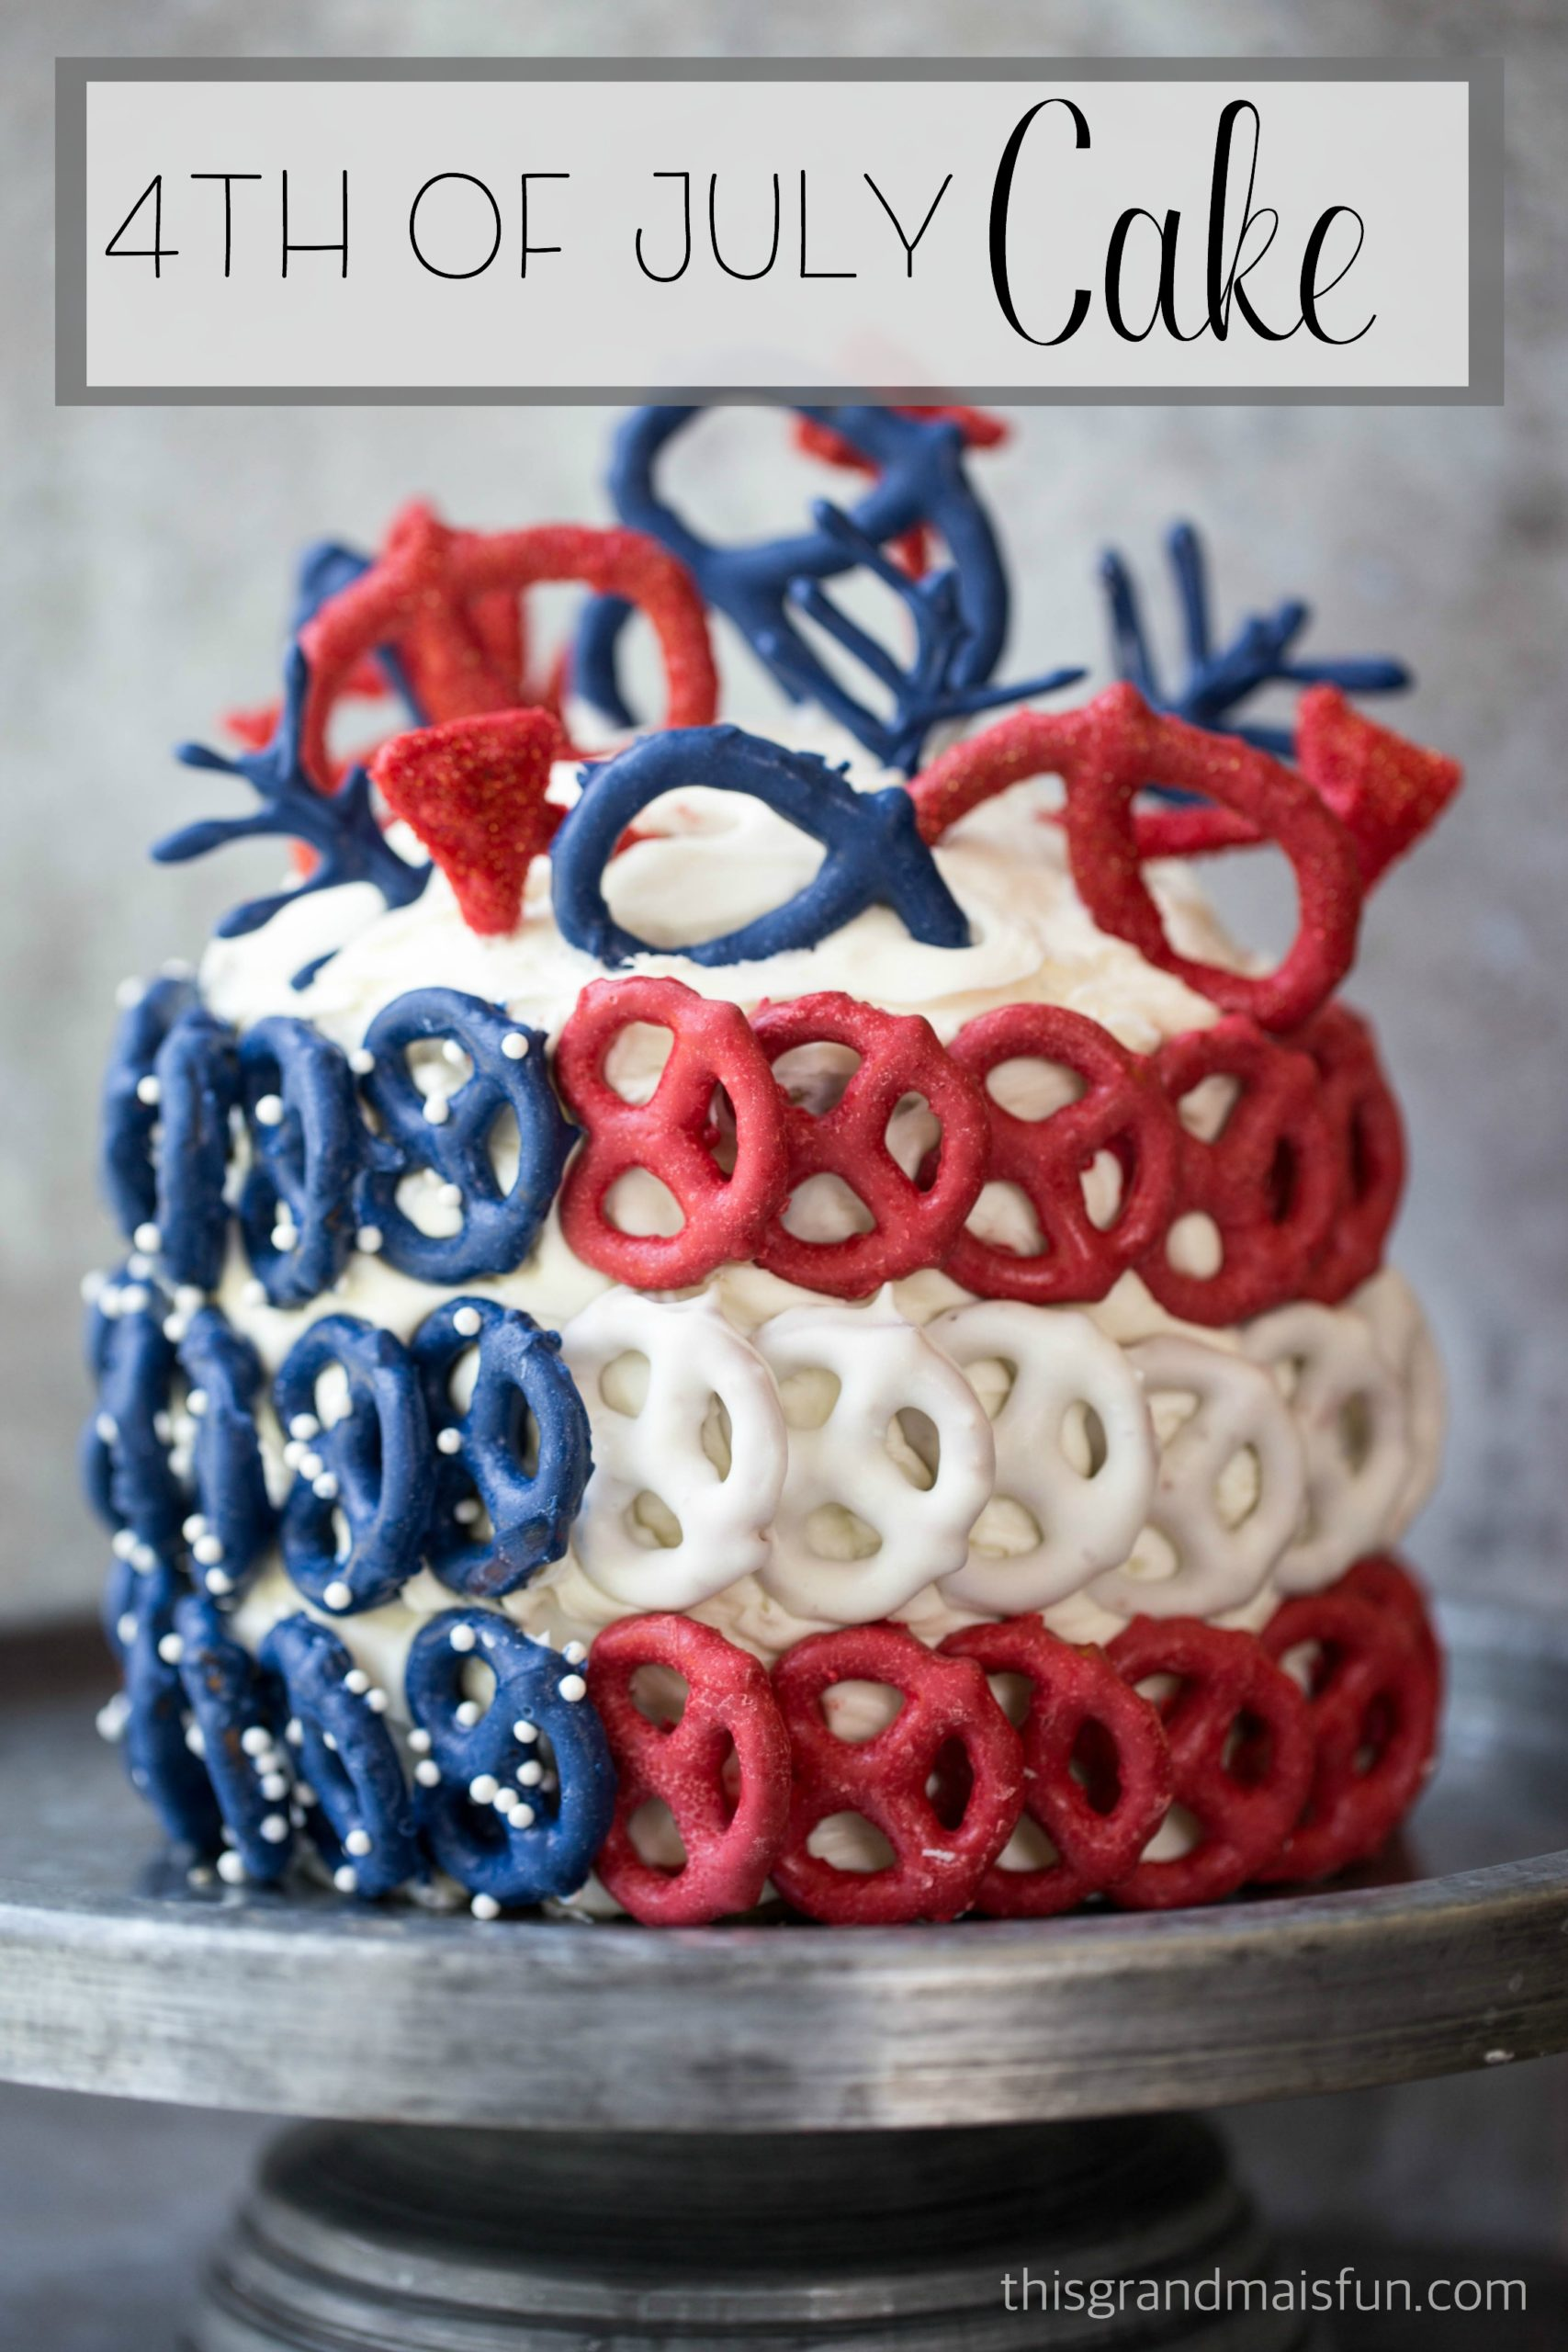 Remarkable 4Th Of July Cake Tgif This Grandma Is Fun Funny Birthday Cards Online Necthendildamsfinfo